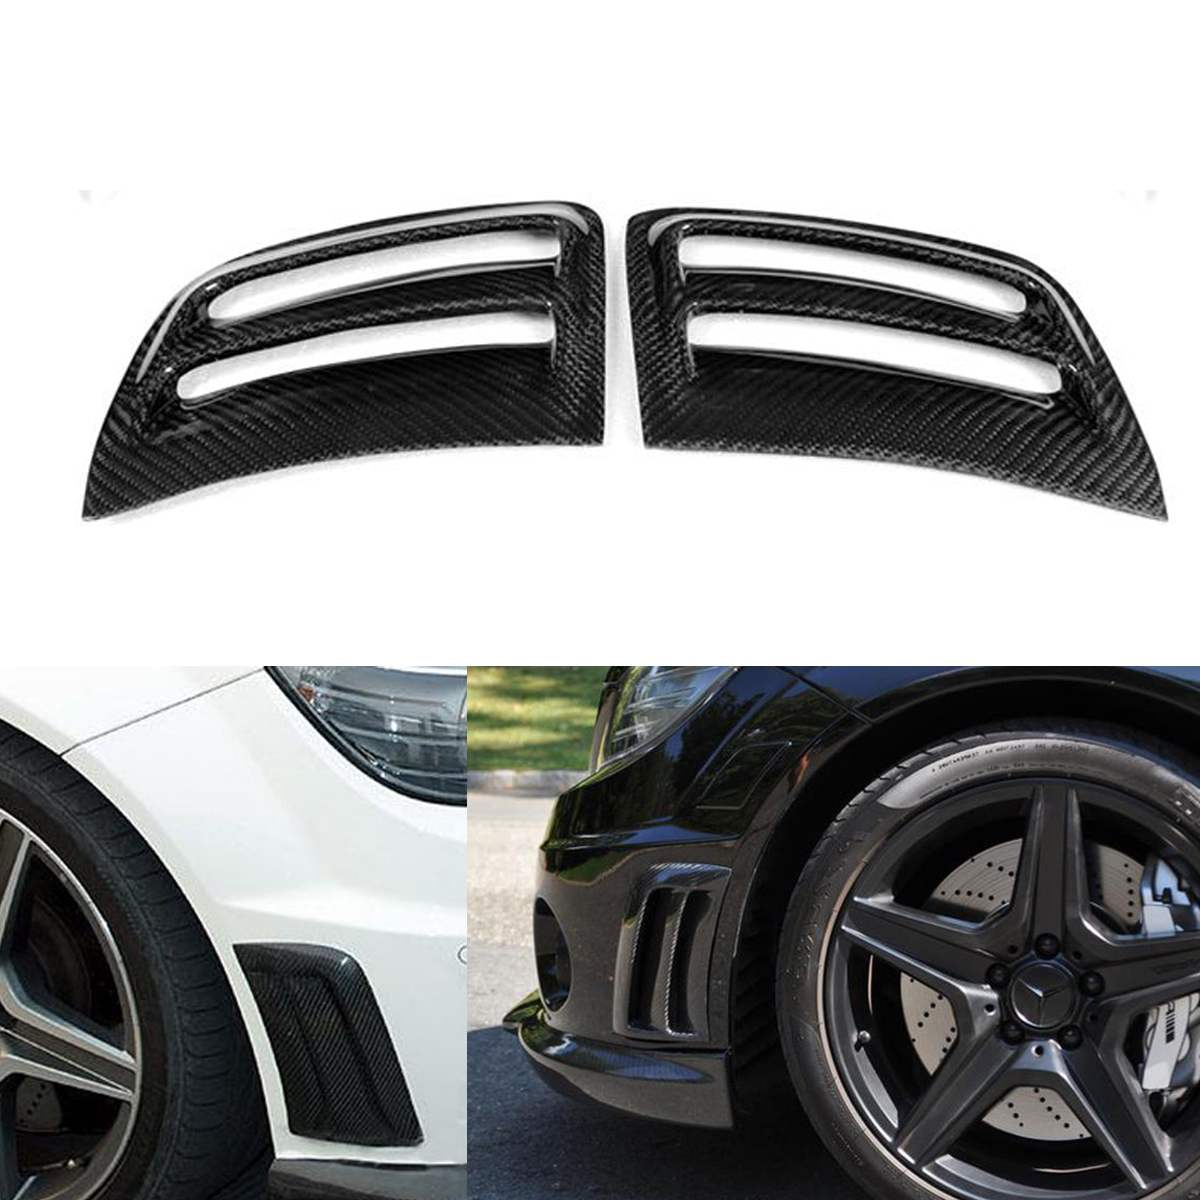 New 2pcs Car Carbon Fiber Air Vent Duct Cover Side Air Insert Vent Cover Trim Cover Vent Sticker For W204 C63 for AMG 08-11New 2pcs Car Carbon Fiber Air Vent Duct Cover Side Air Insert Vent Cover Trim Cover Vent Sticker For W204 C63 for AMG 08-11